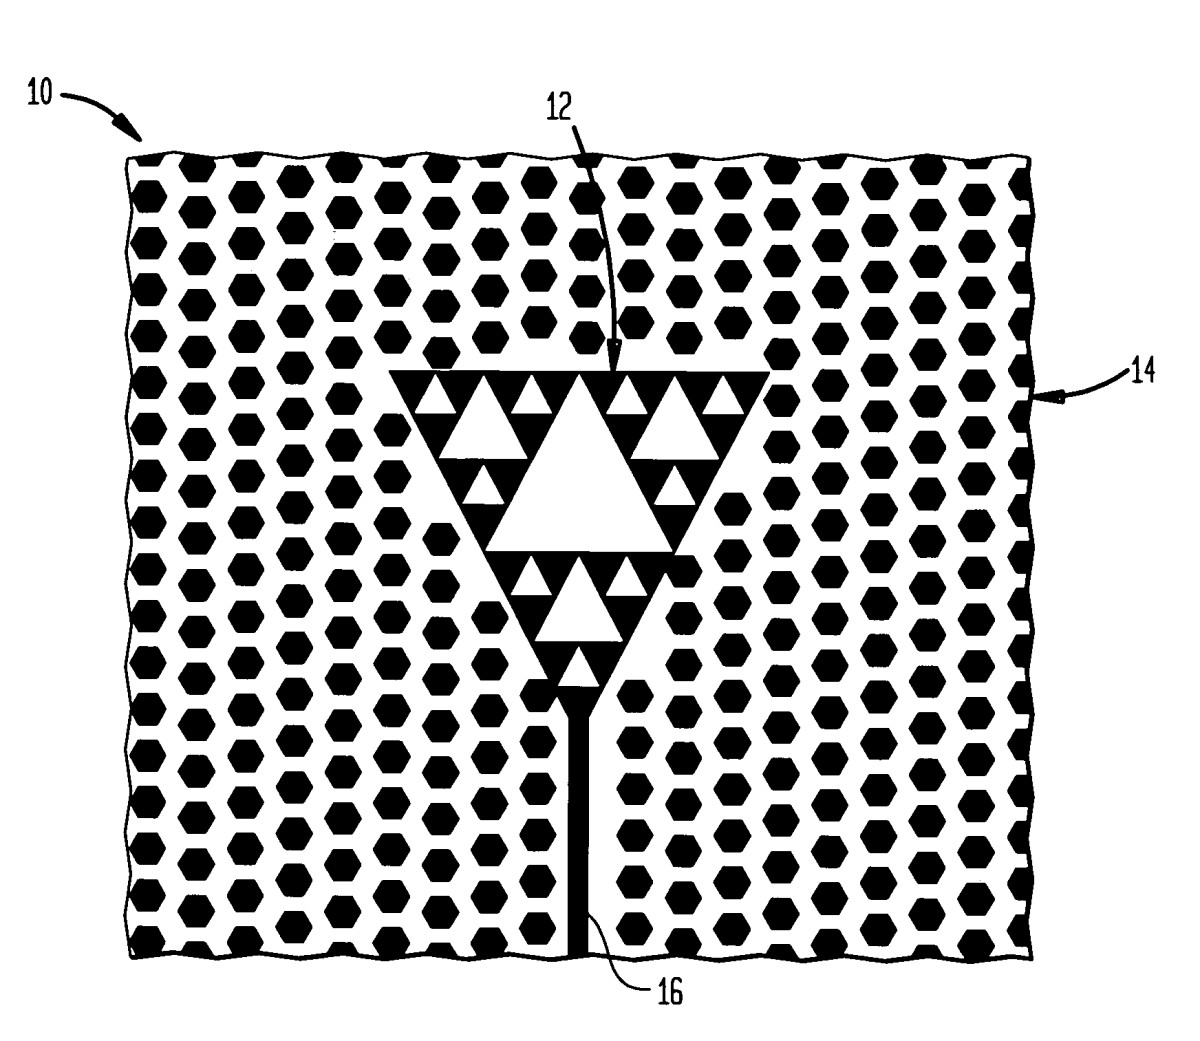 The Sierpinski triangle incorporated on a circuit board may look something like this.